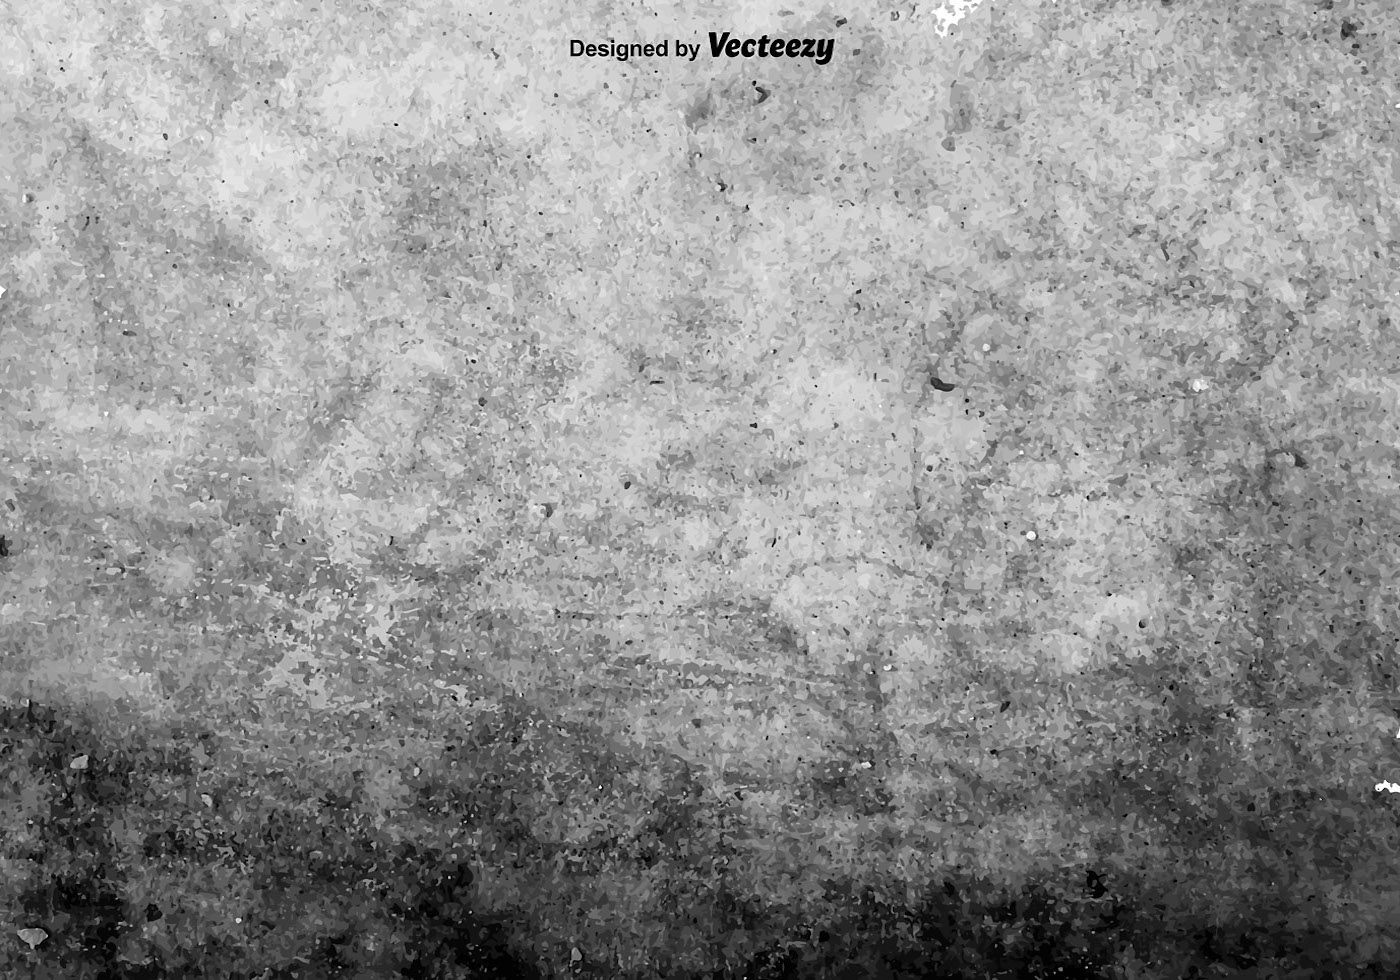 Vector Grunge Texture Background - Download Free Vector Art, Stock Graphics & Images